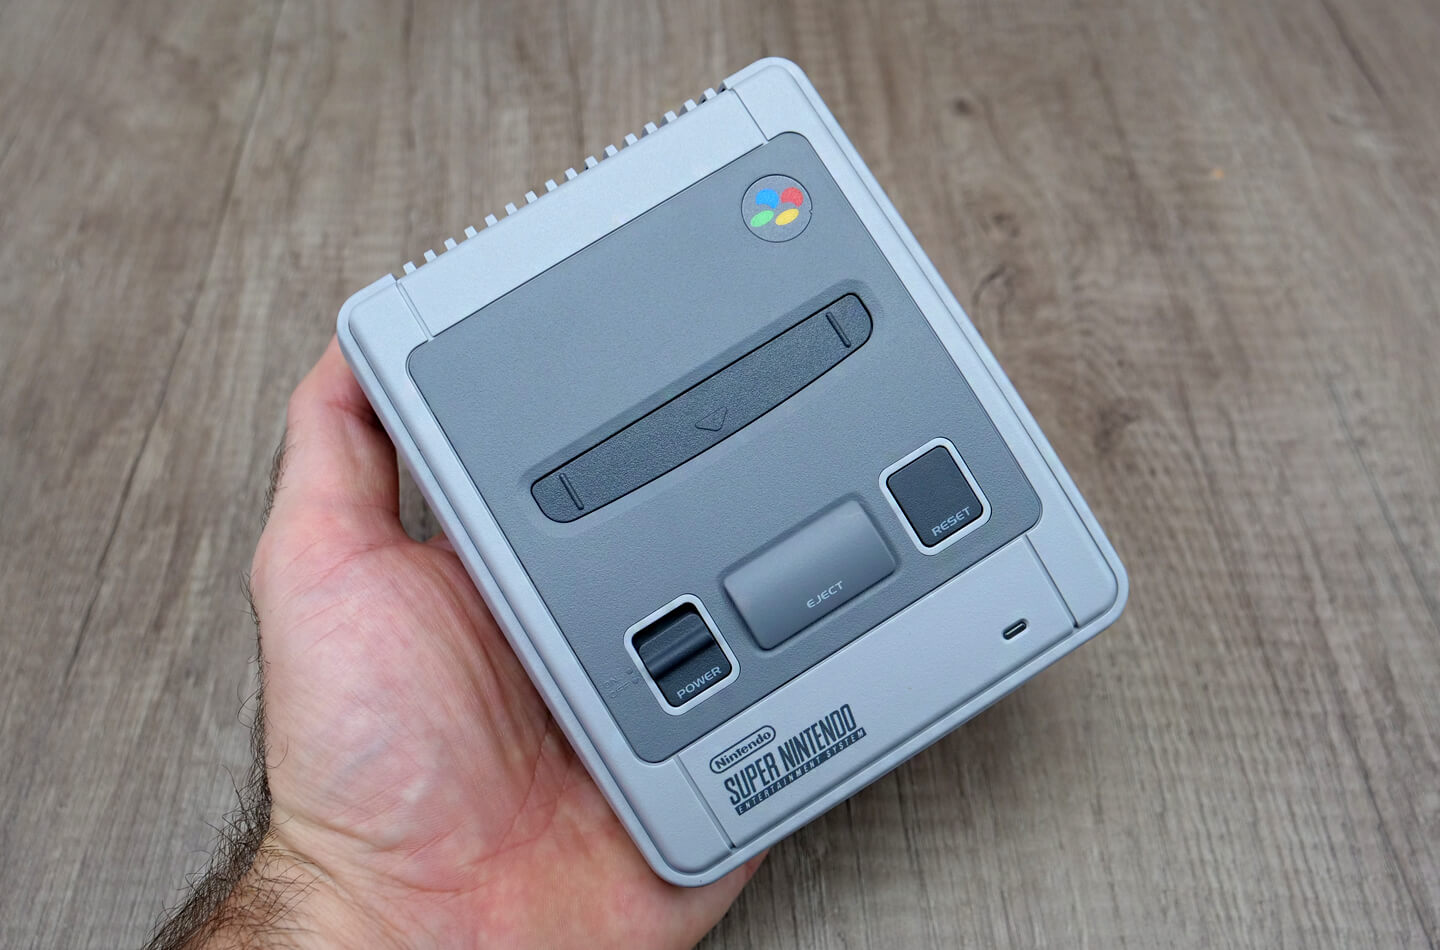 nintendo snes classic mini review letsgodigital. Black Bedroom Furniture Sets. Home Design Ideas